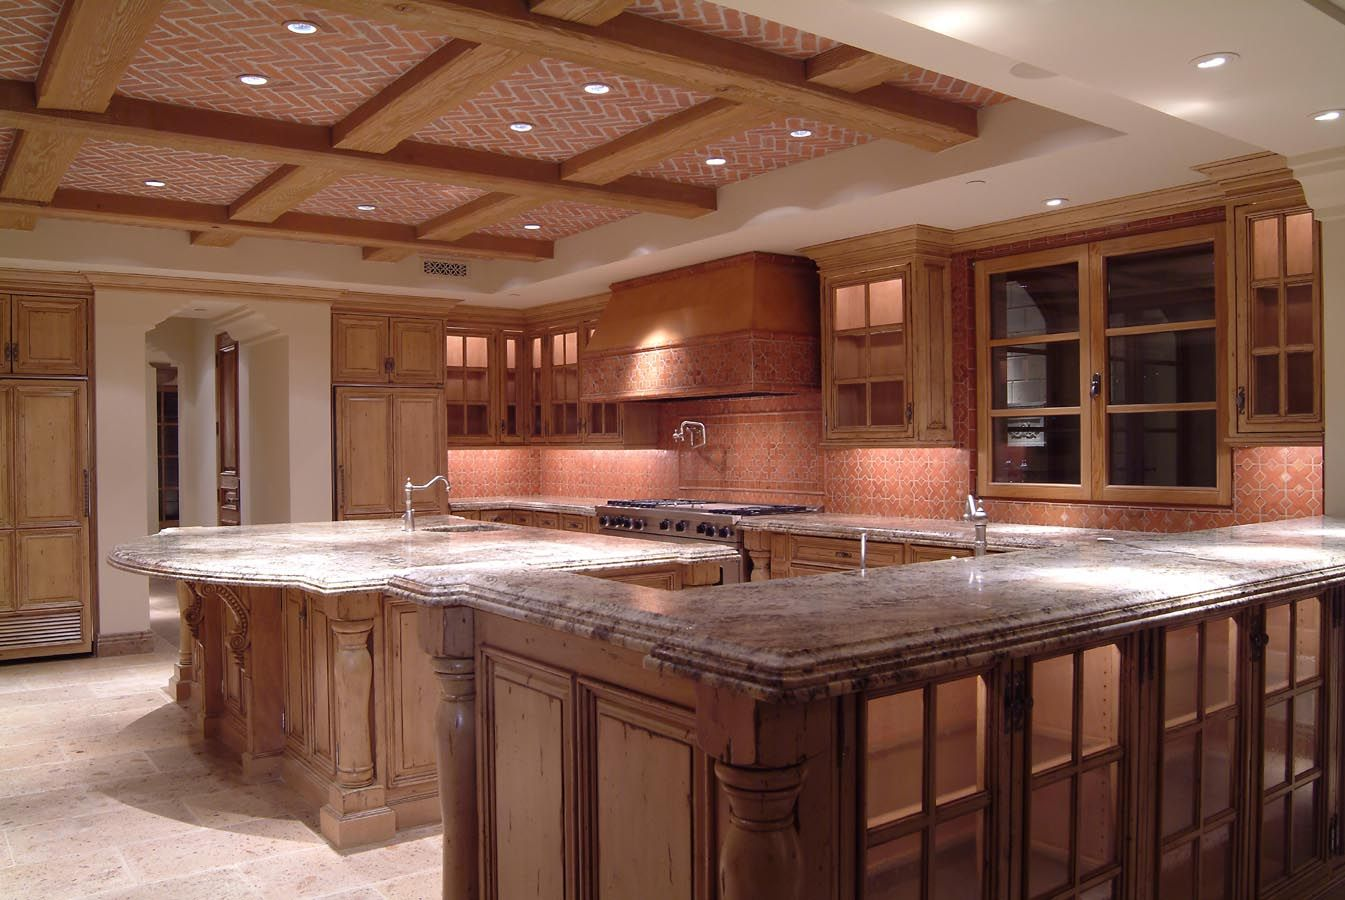 Ultra High-End Custom Kitchen Cabinetry | high end cabinetry by All on high end kitchen tools, high end kitchen pendant lights, high end storage cabinets, high end oak kitchens, high end kitchen appliances, high end kitchen canisters, high end railings, high end roofing, high end kitchen interiors, high end shelves, high end kitchen hoods, high end trim, high end kitchen carts, high end kitchen design, high end kitchen knobs, high end kitchen plans, high-end custom cabinets, high end kitchen chairs, high end kitchen tiles, high end kitchen showroom,